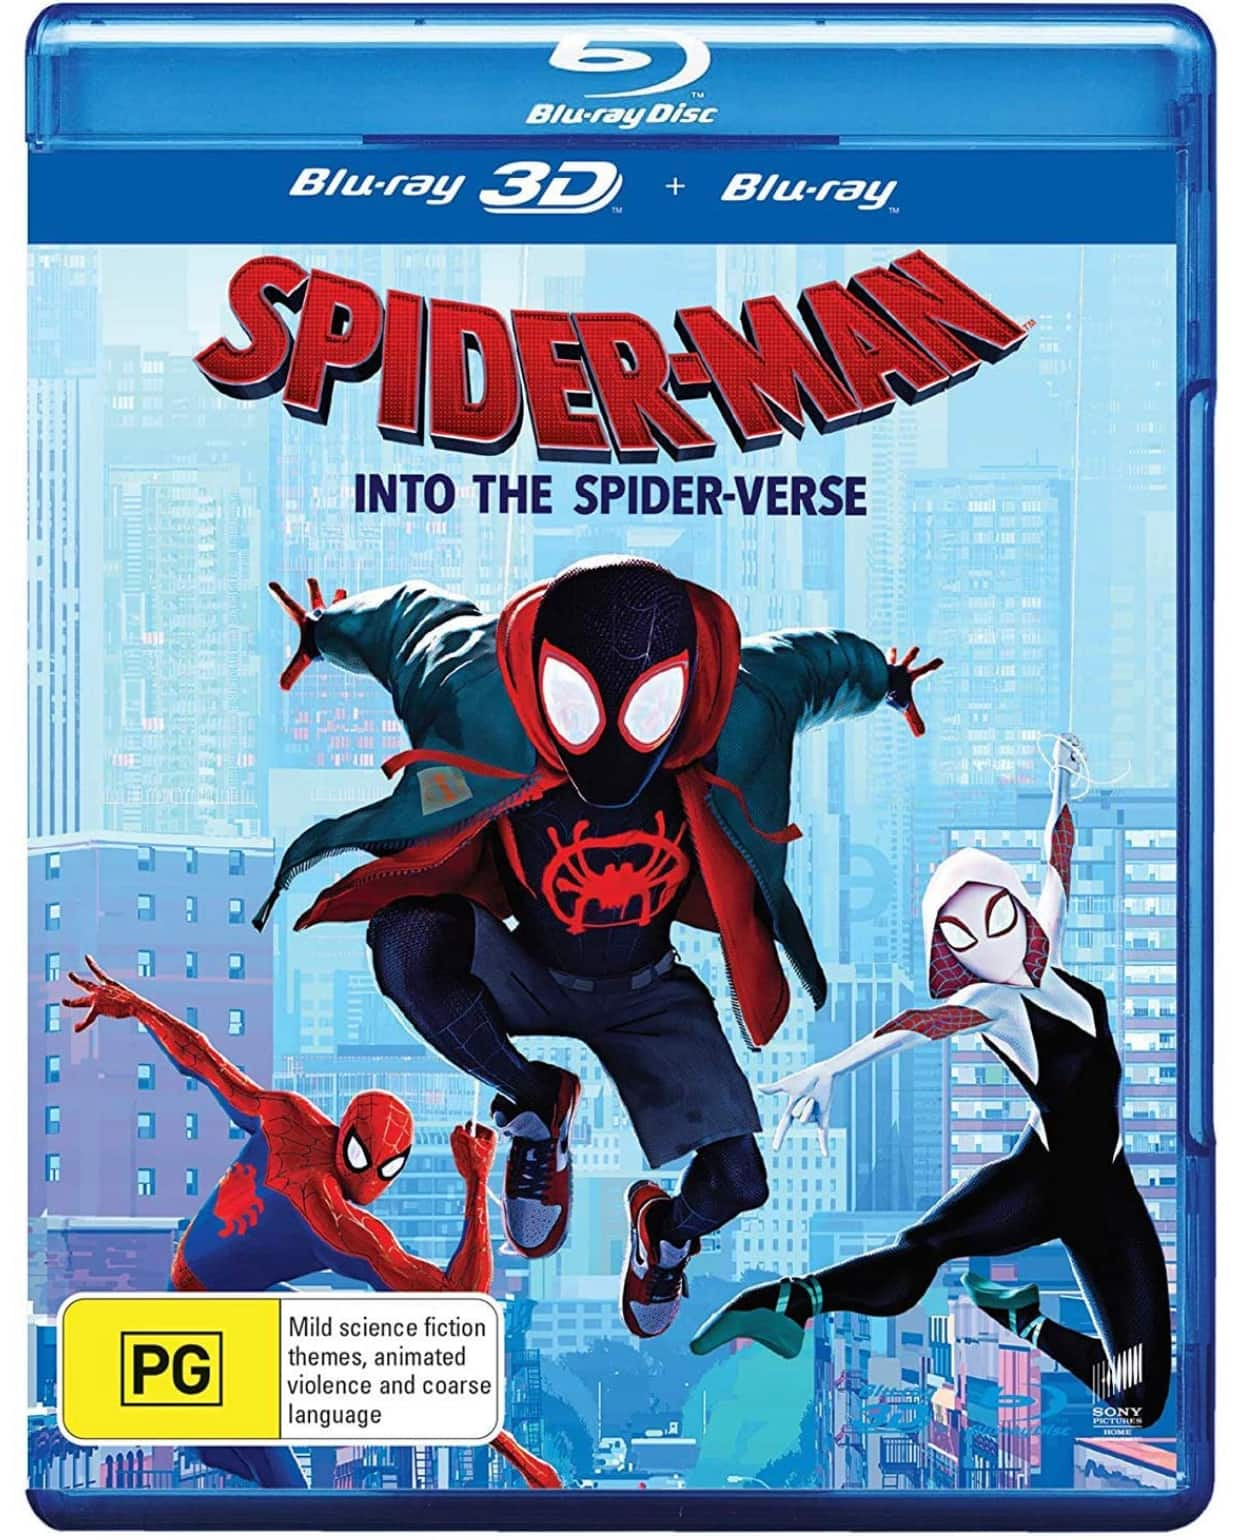 Spider-Man: Into the Spider-Verse 3D (Blu-ray 3D/Blu-ray) Region-free $19.99